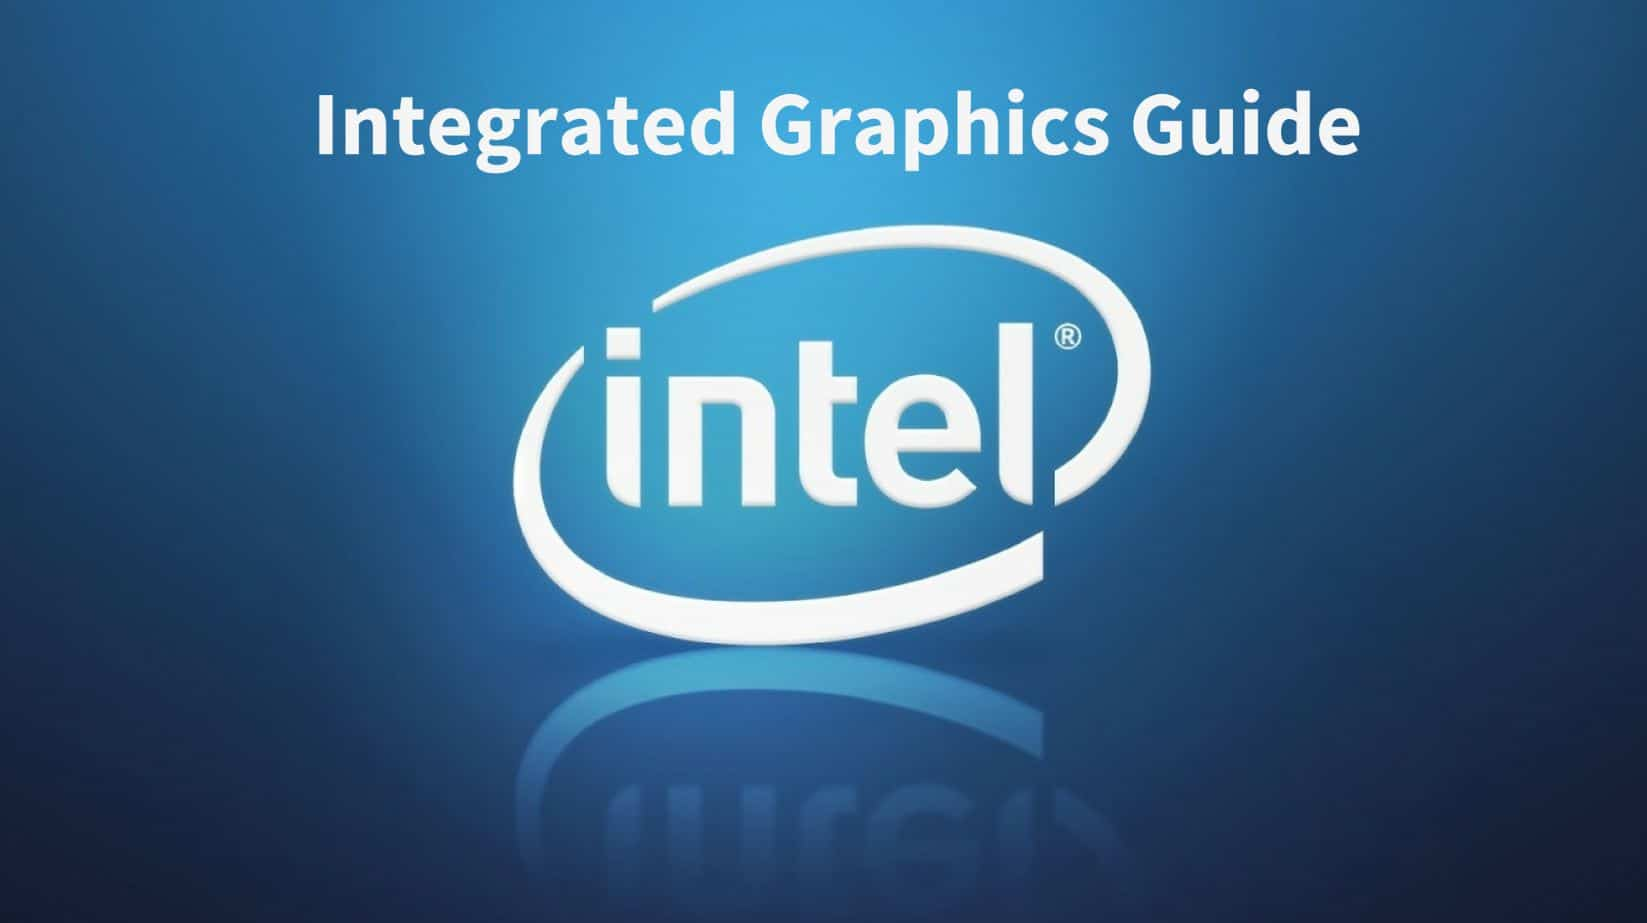 Intel HD Graphics: The Ultimate Guide to Improve Performance